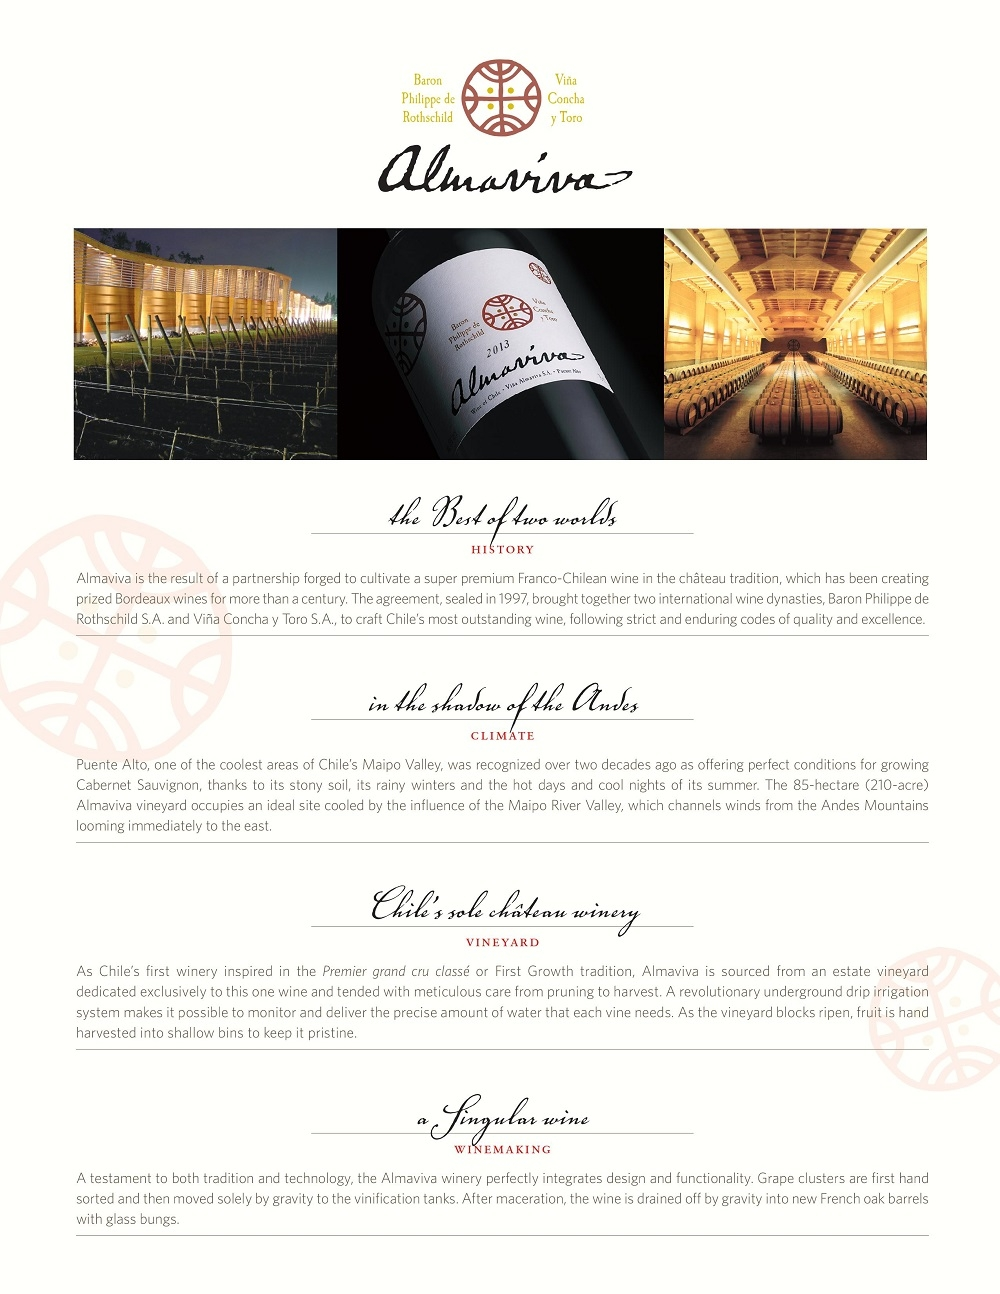 Almaviva is the result of a partnership forged to cultivate a super premium Franco-Chilean wine in the château tradition, which has been creating